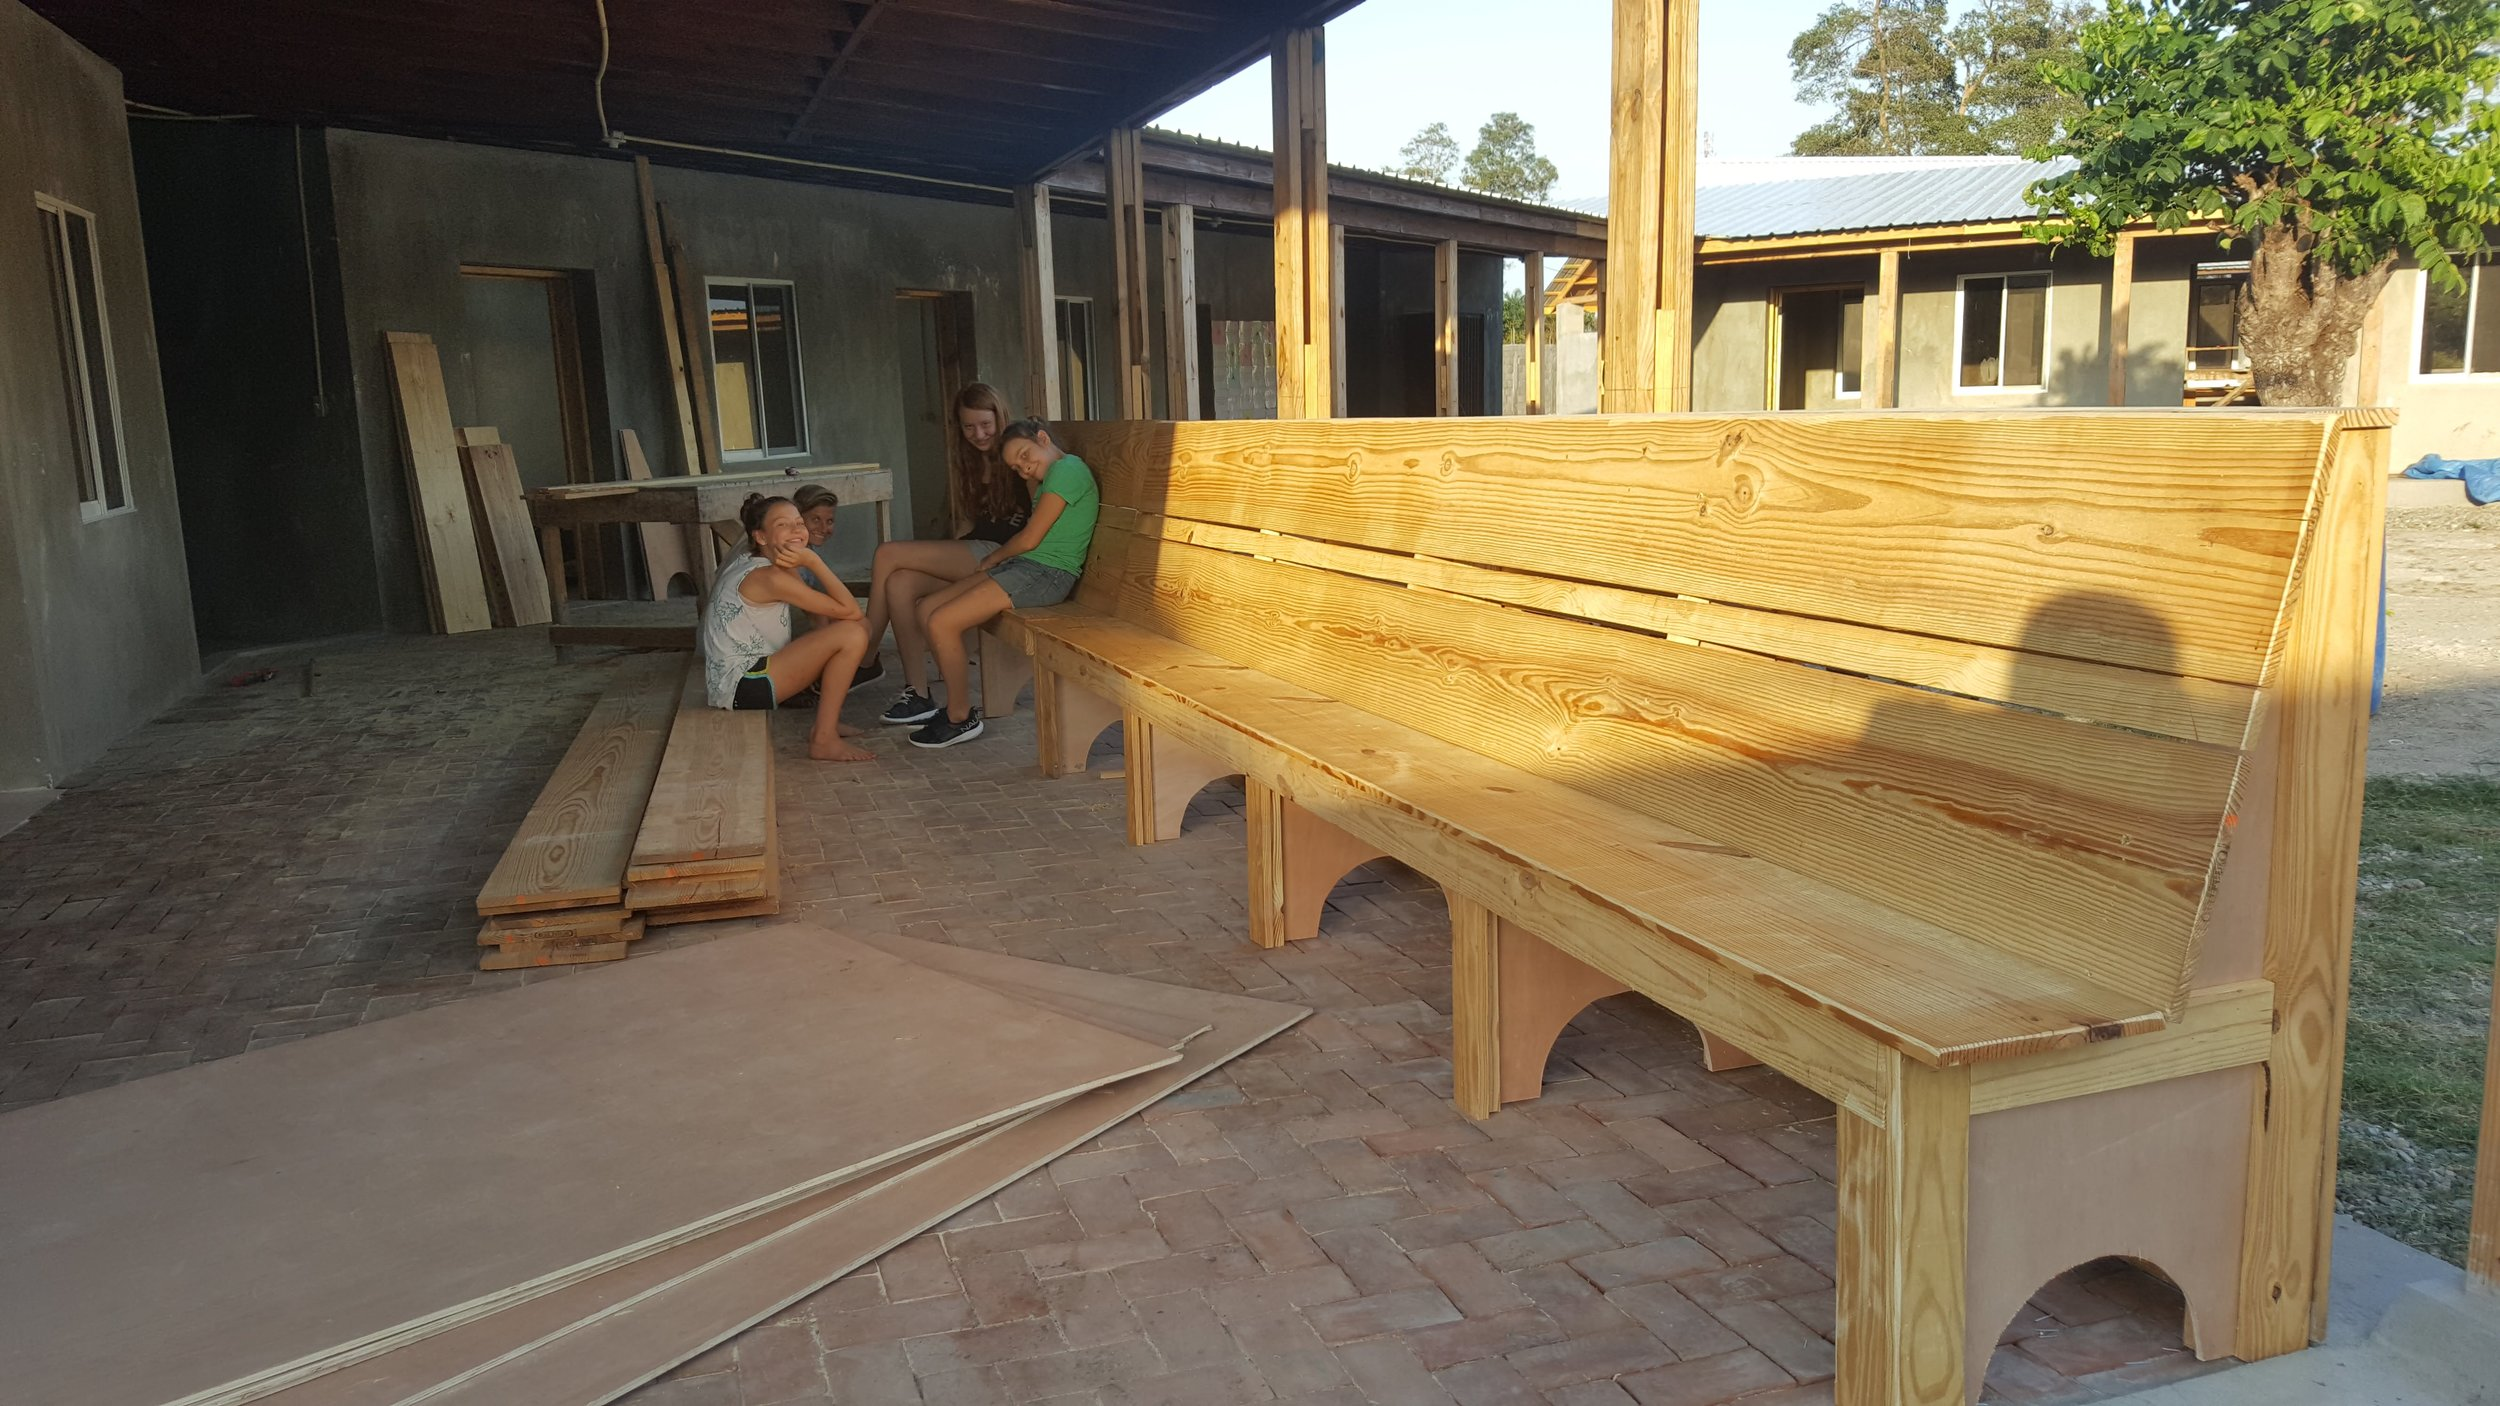 Some beautiful benches that Jeremiah built